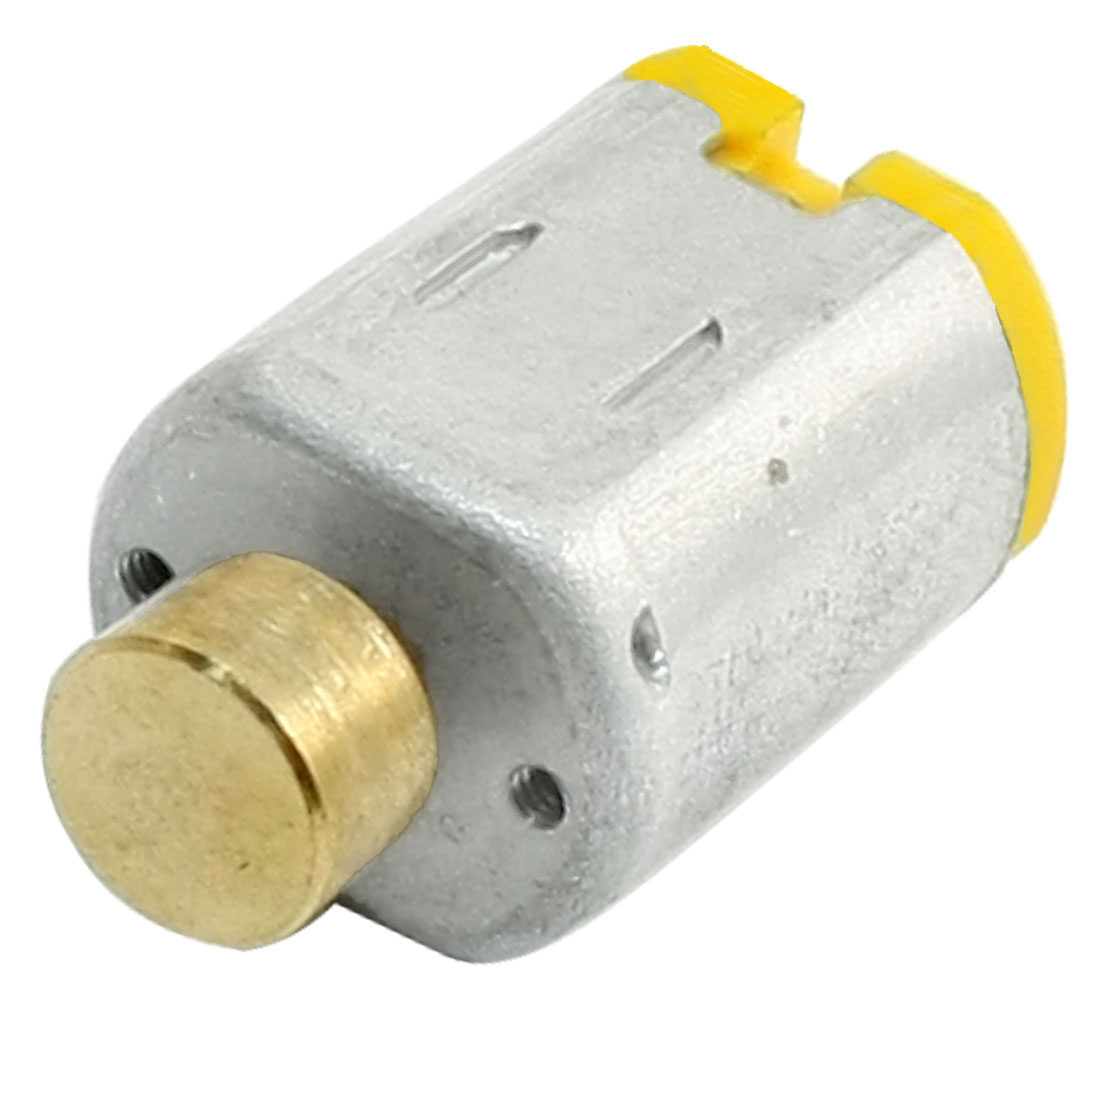 DC 3V 11000 r/min High Torque Vibration Motor for RC Model